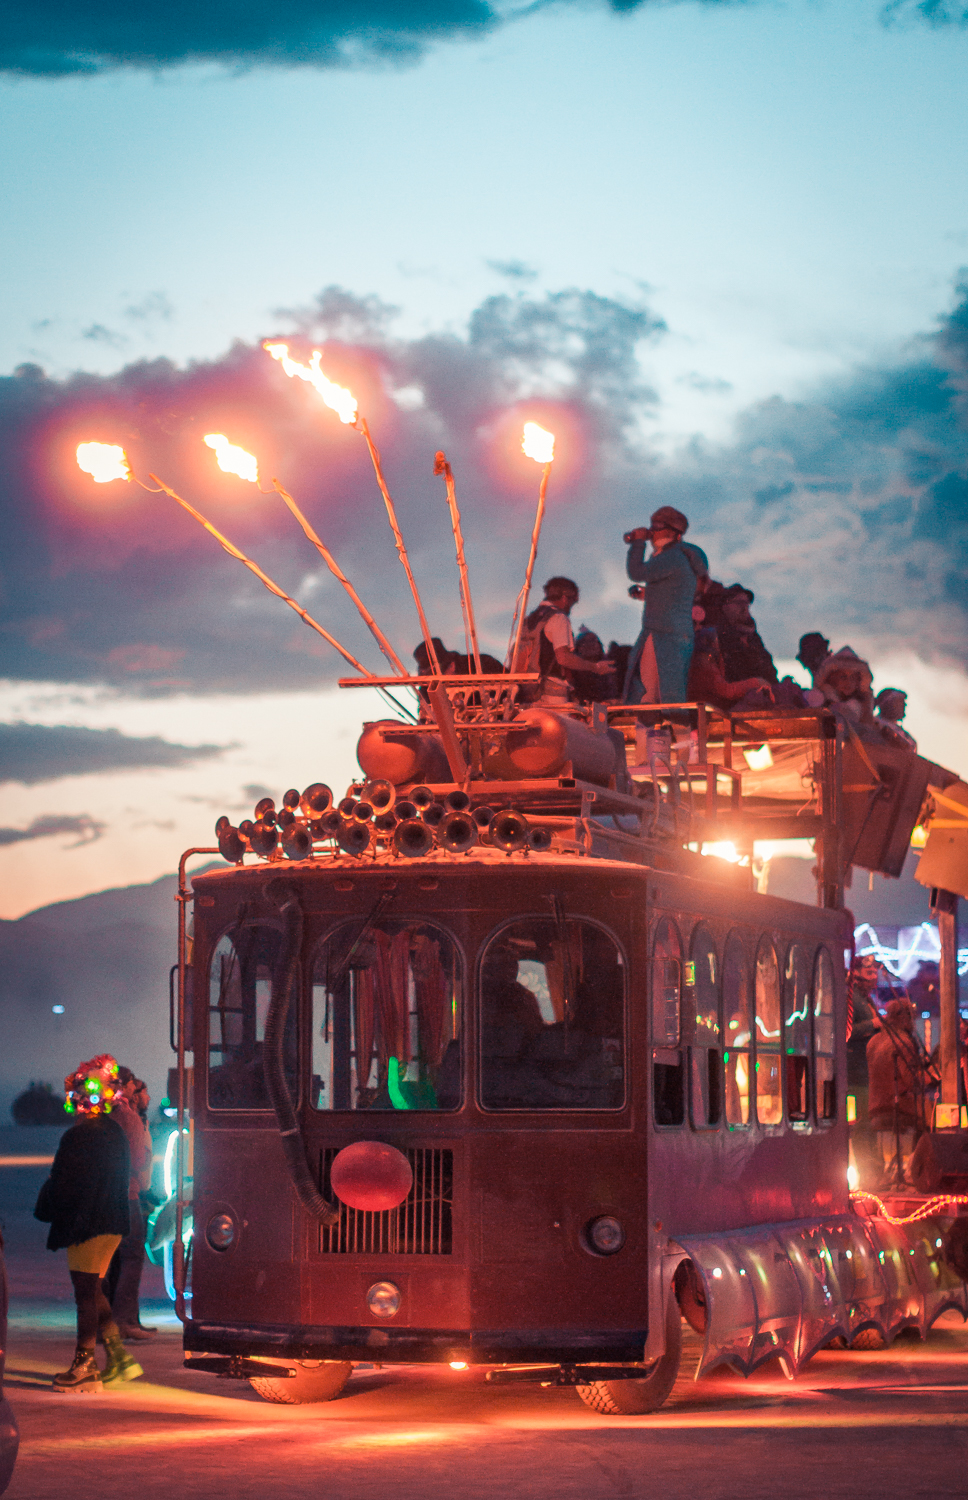 20160903-Burning man-77.jpg